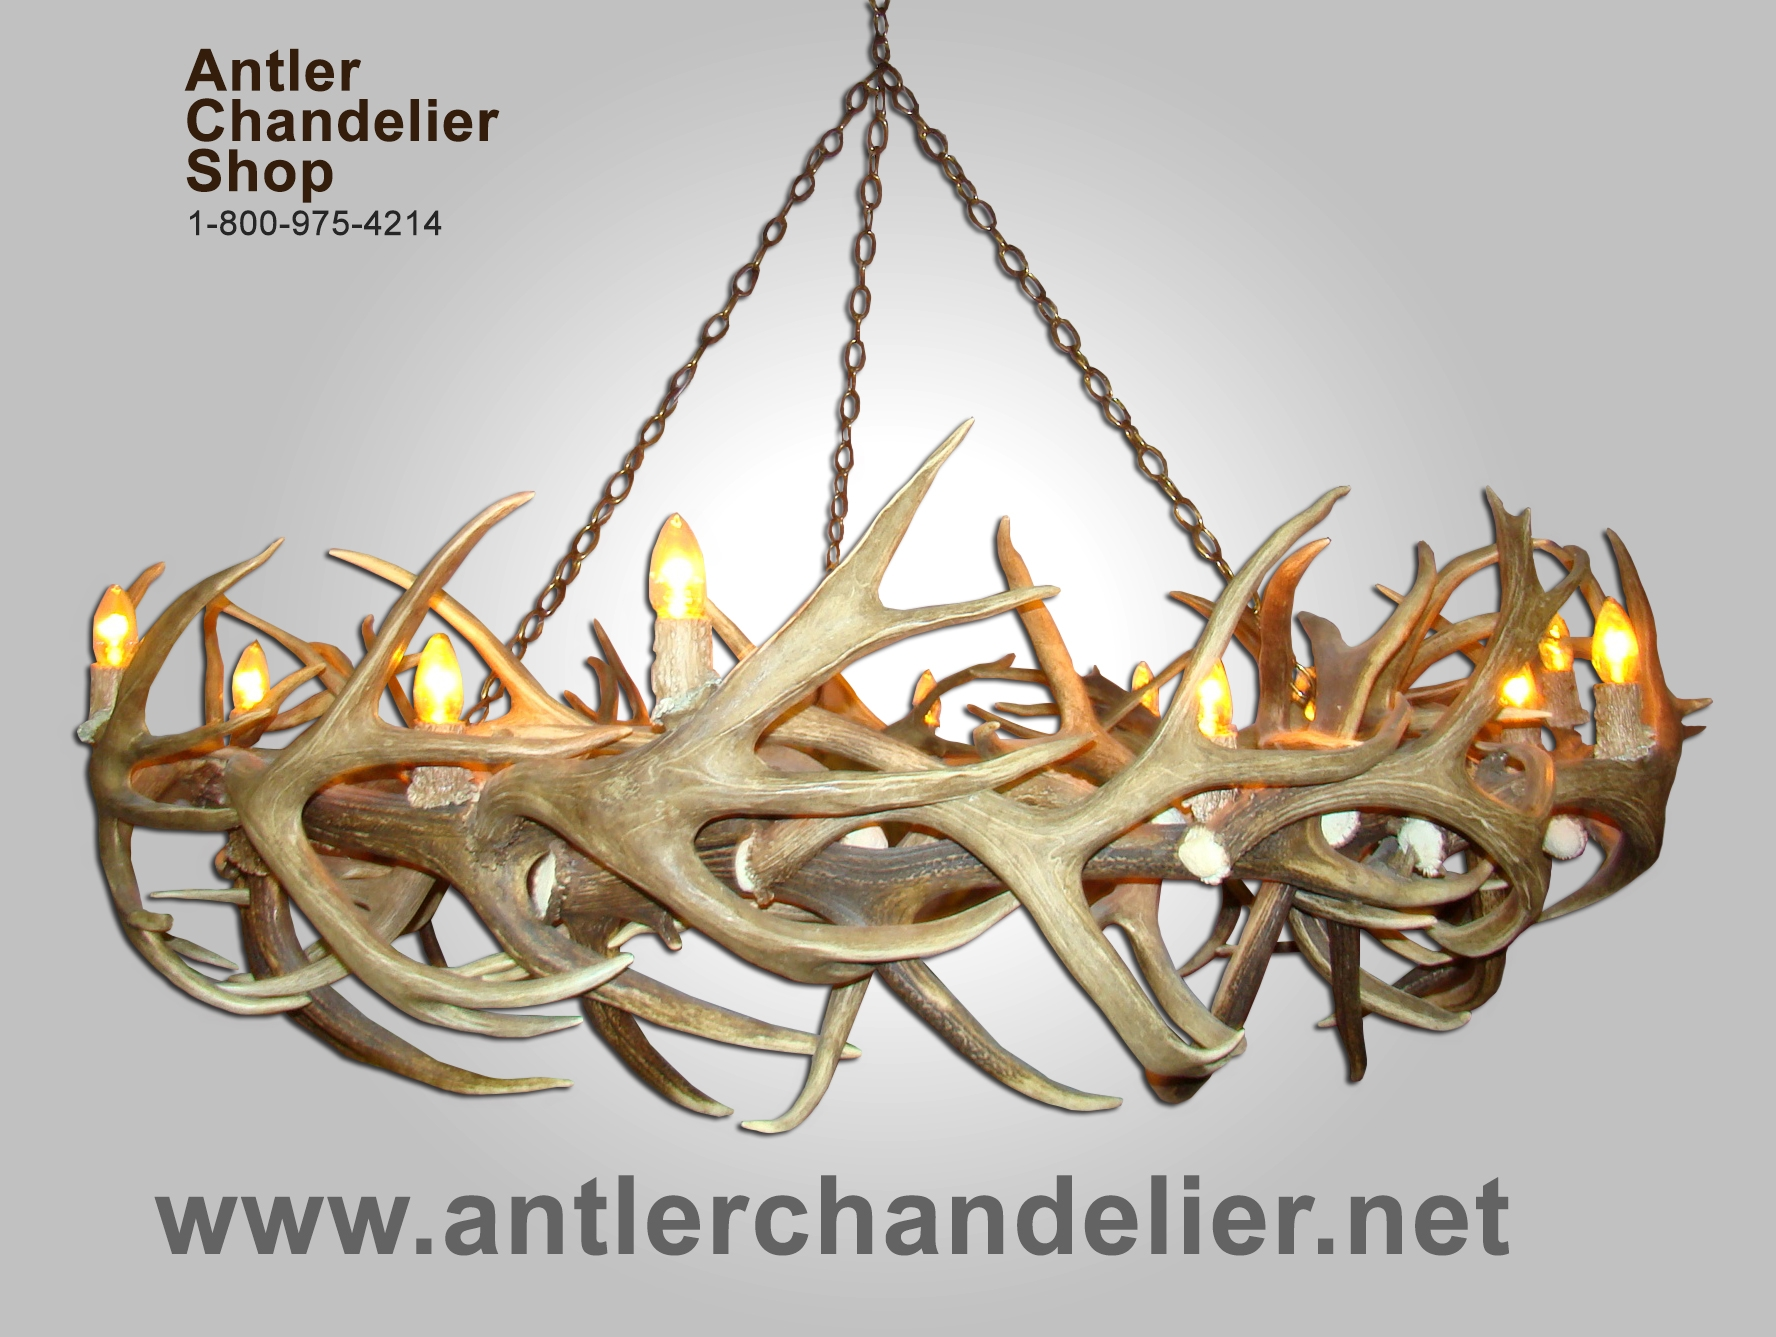 Deerantlerchandelier Xl Antler Chandeliers Antler Chandelier Inside Antlers Chandeliers (View 12 of 15)